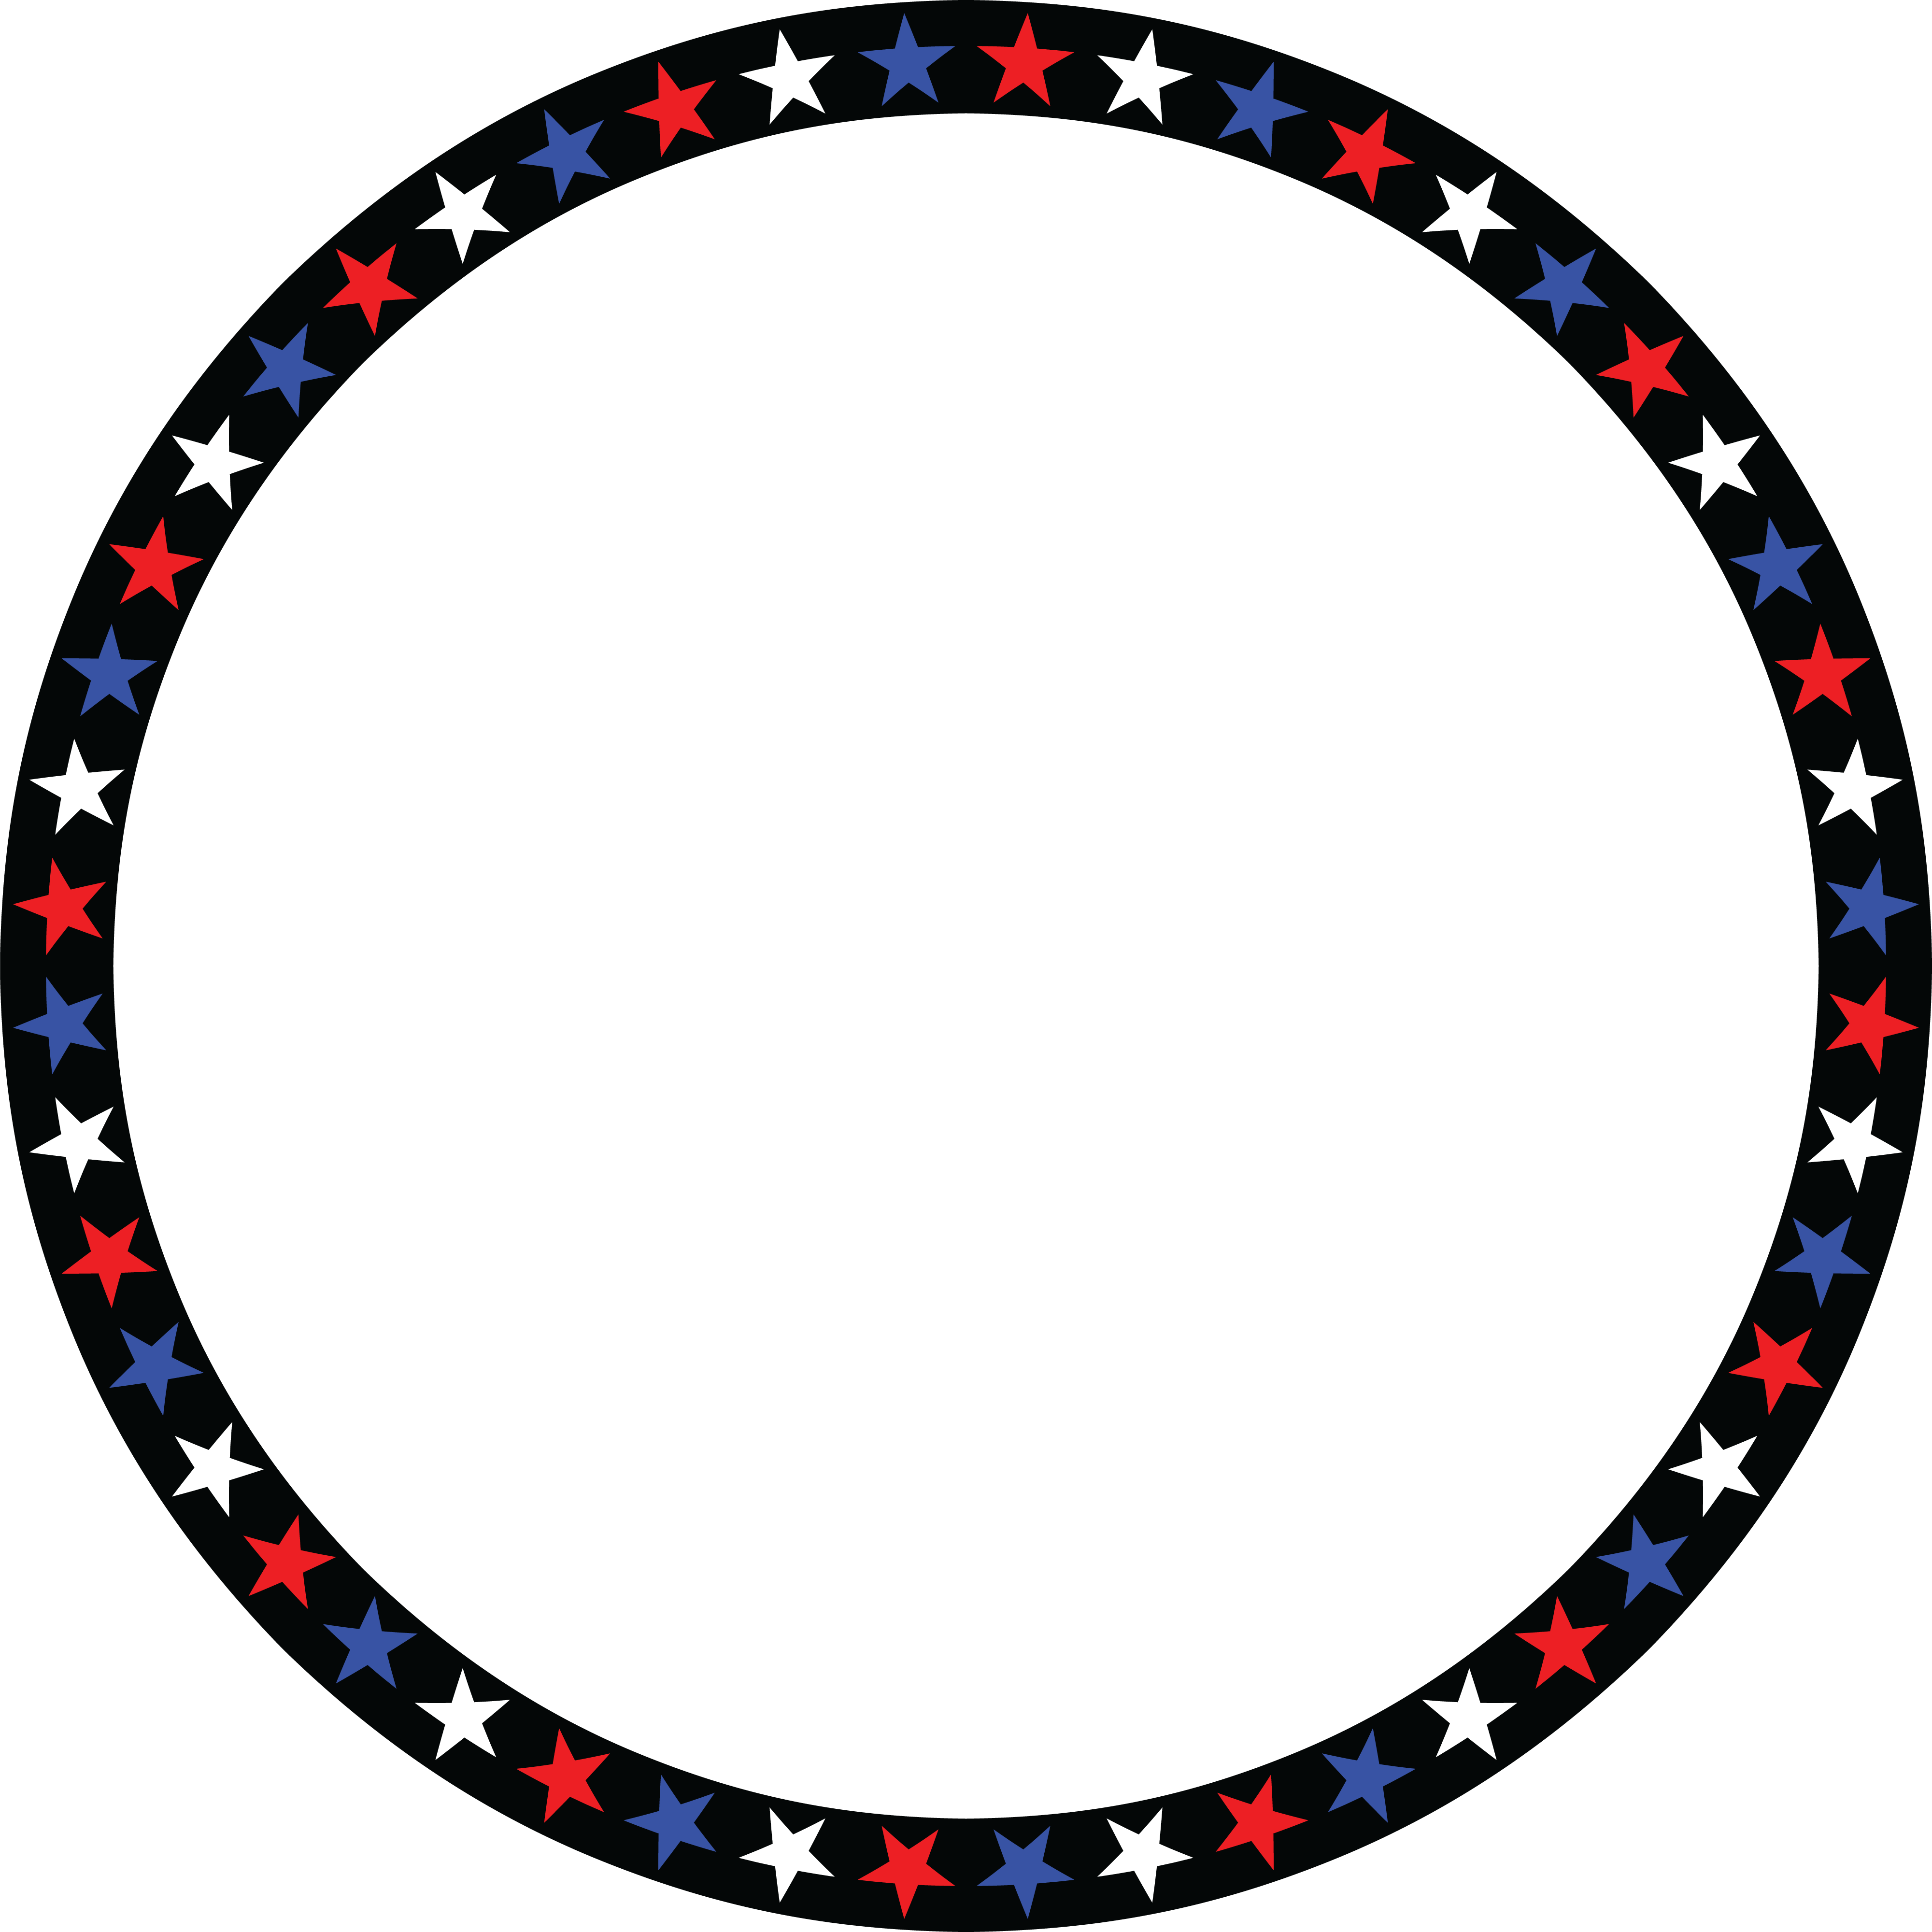 Free Clipart Of A Patriotic American Star Patterned Circle